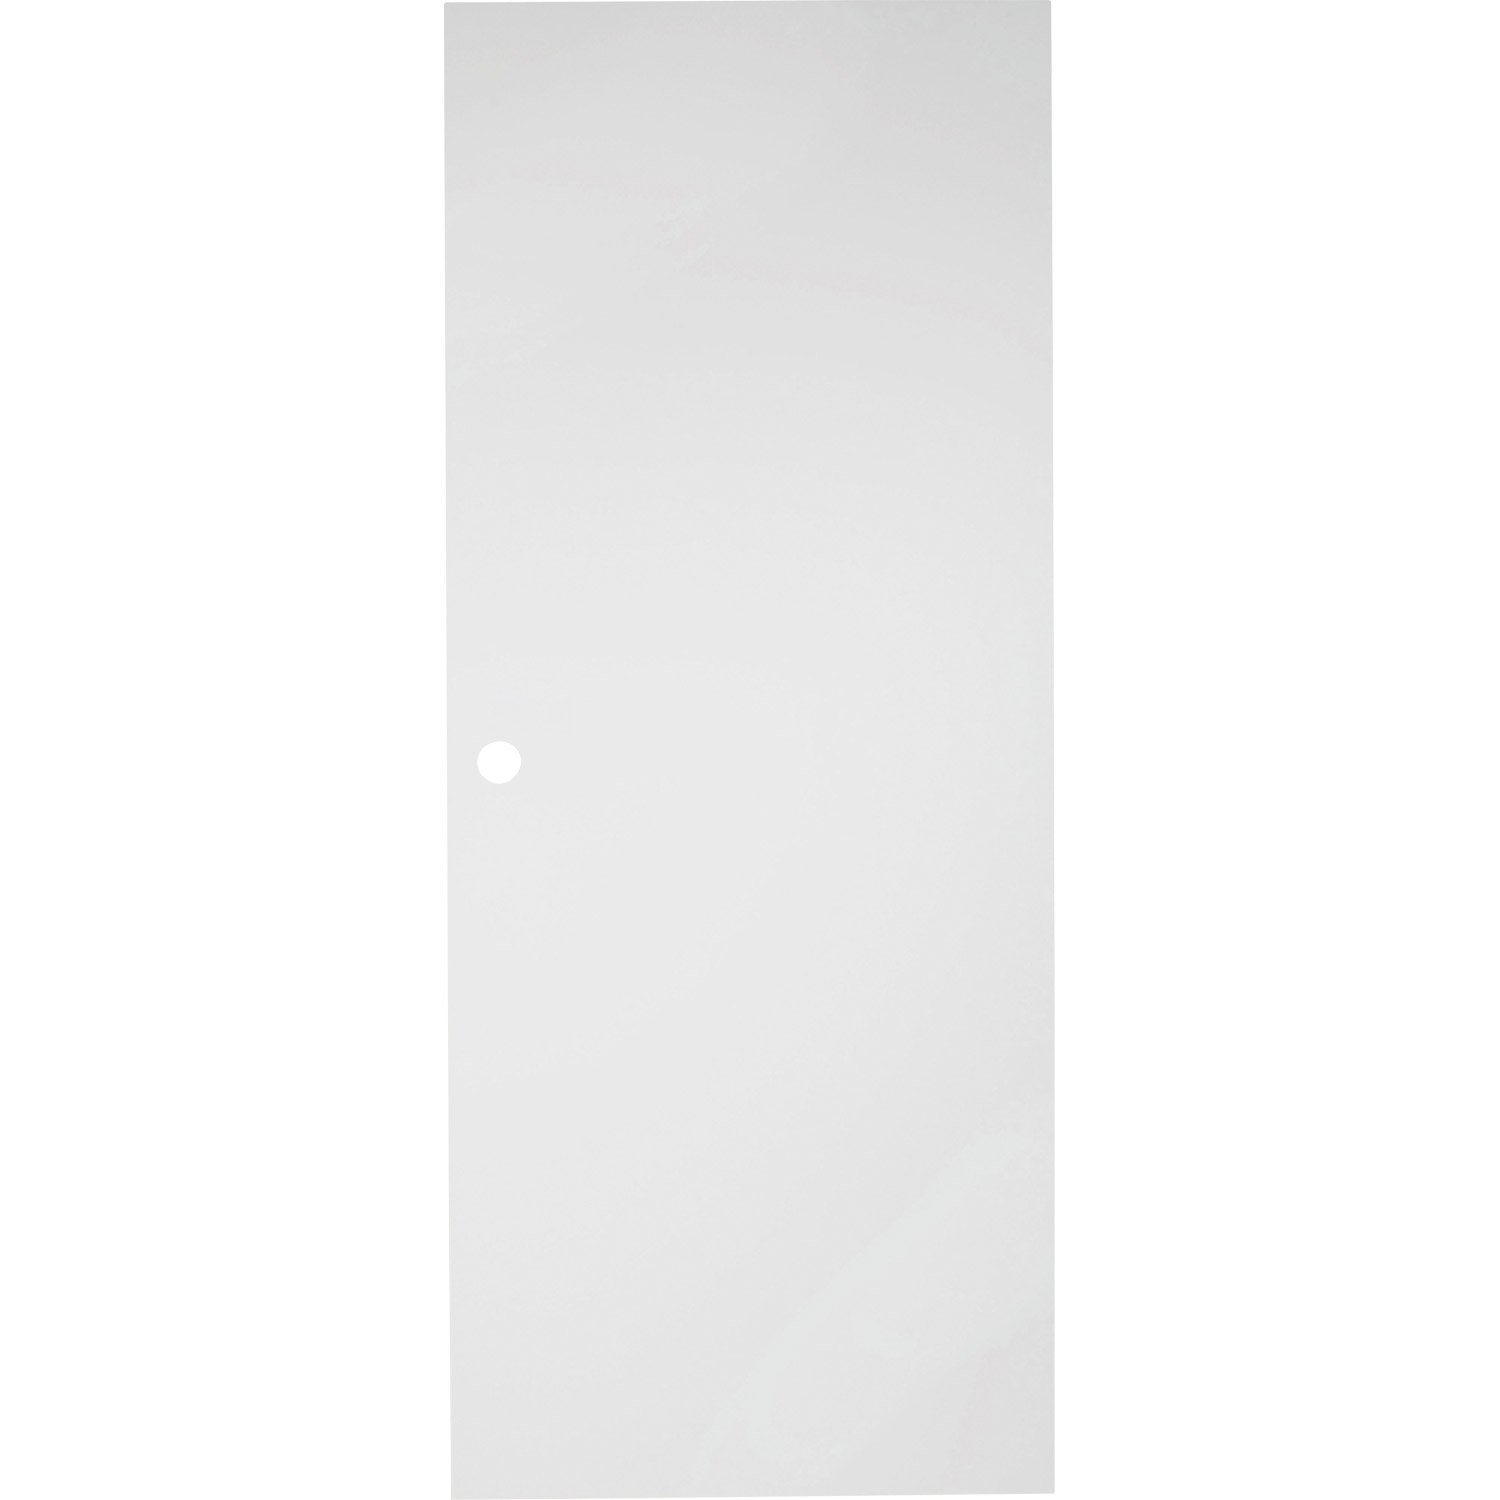 Porte coulissante lily 224 x 93 cm leroy merlin for Portes coulissantes leroy merlin